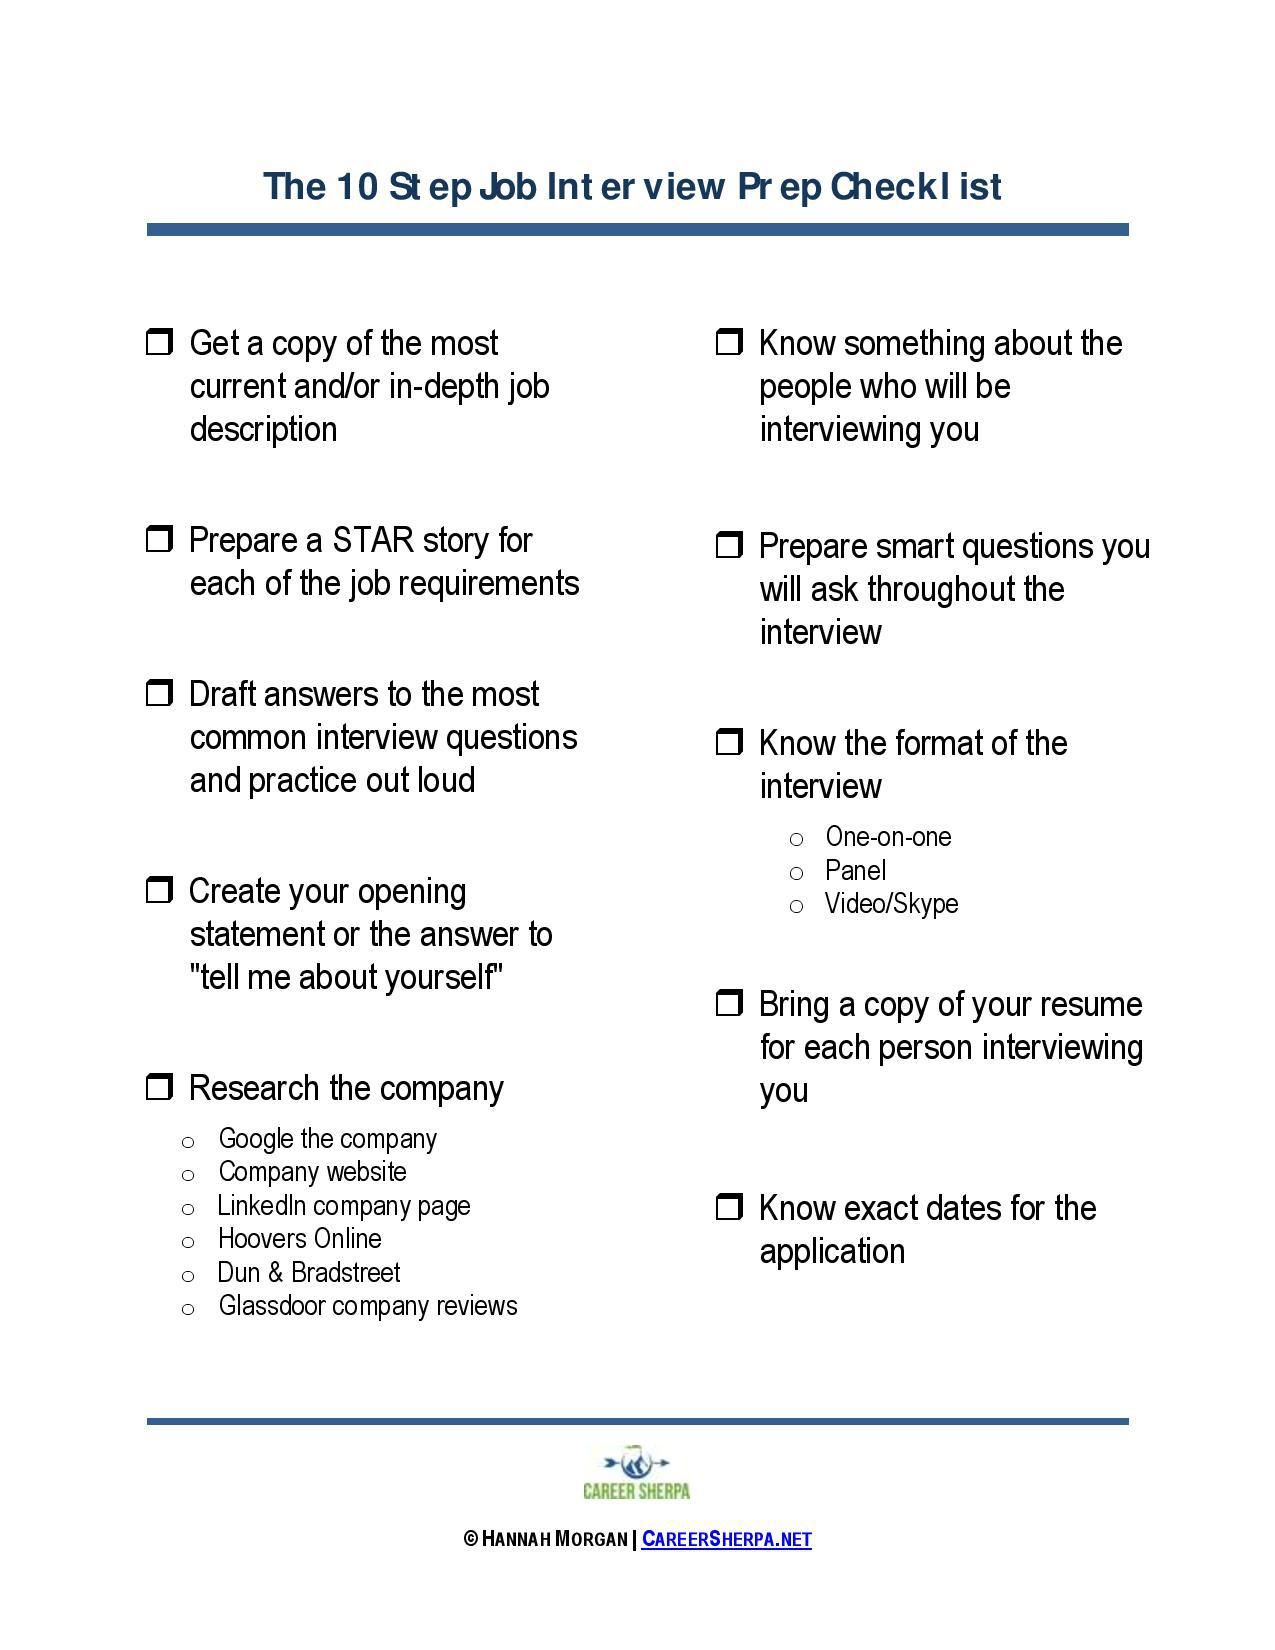 10 Step Job Interview Prep Checklist